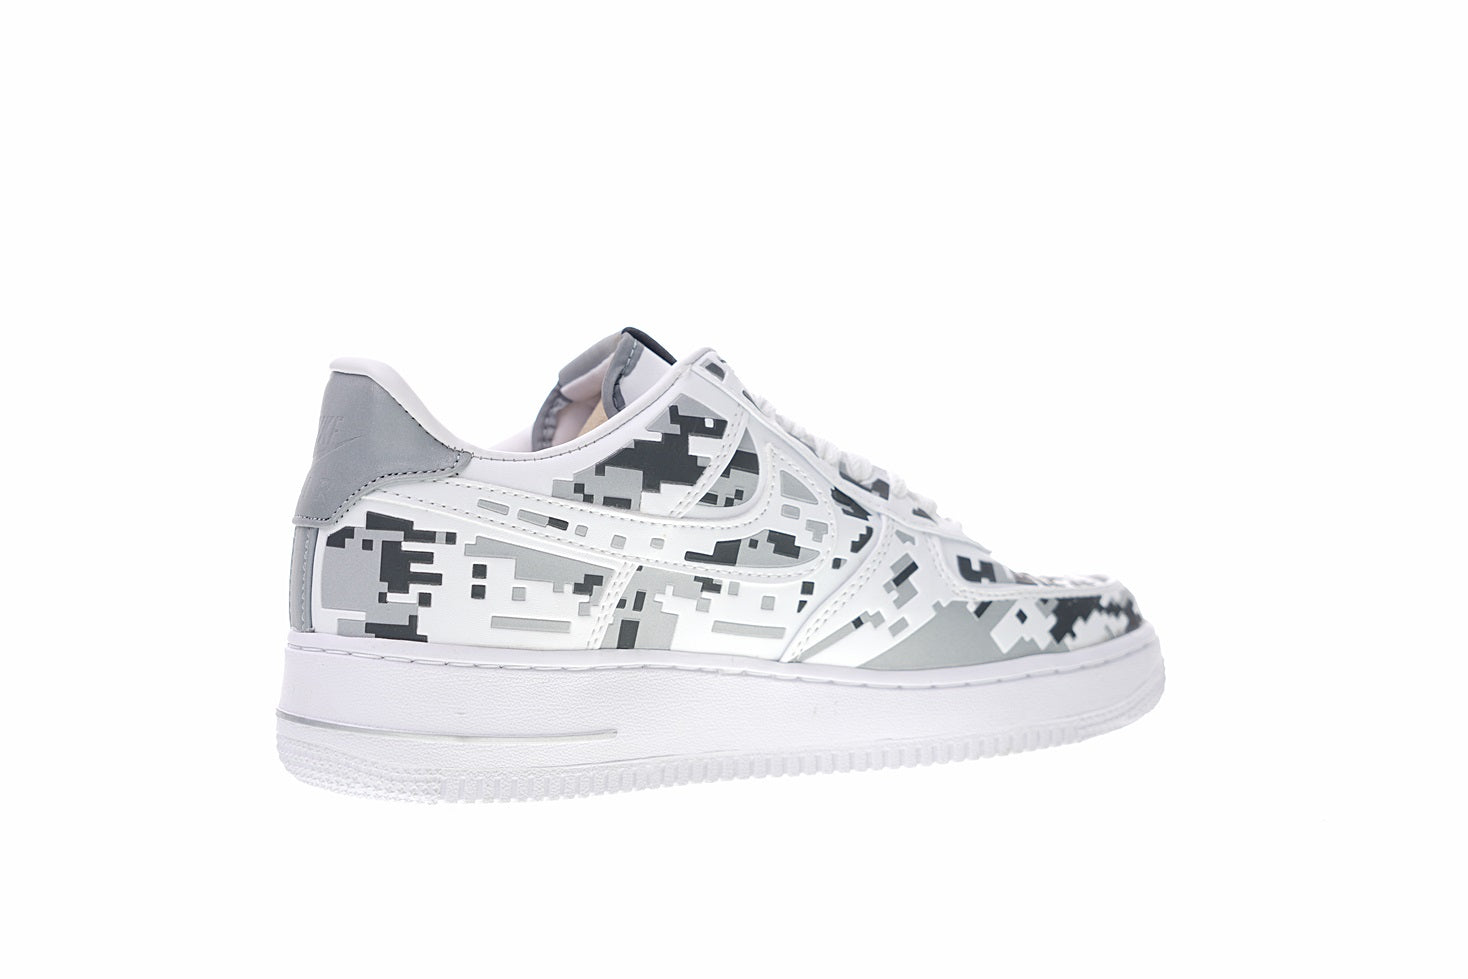 467c26771fd02 Nike Air Force 1 Low Premium 08 QS